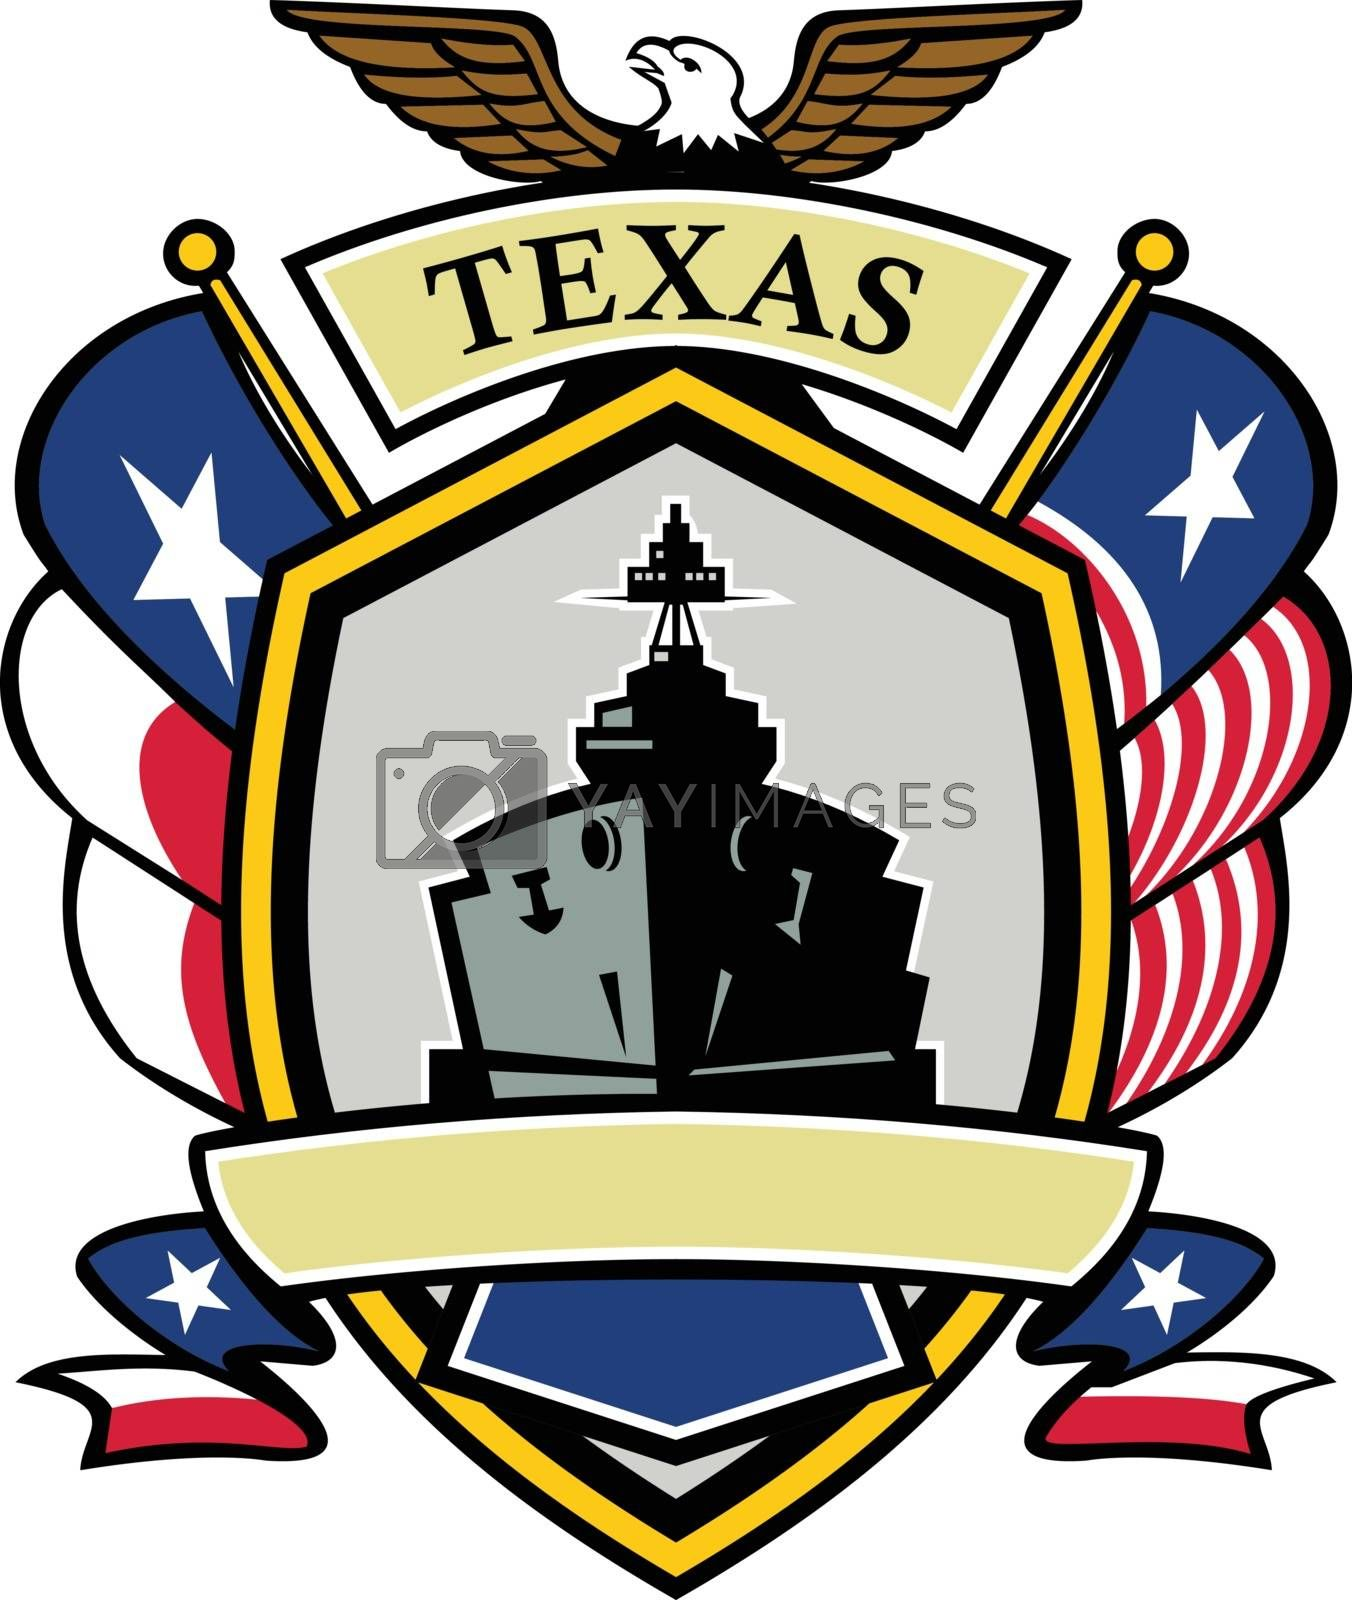 Icon style illustration of a Texas Navy Battleship with Texas Lone Star and Navy Flag on side and American Eagle up top set inside shield crest shape.